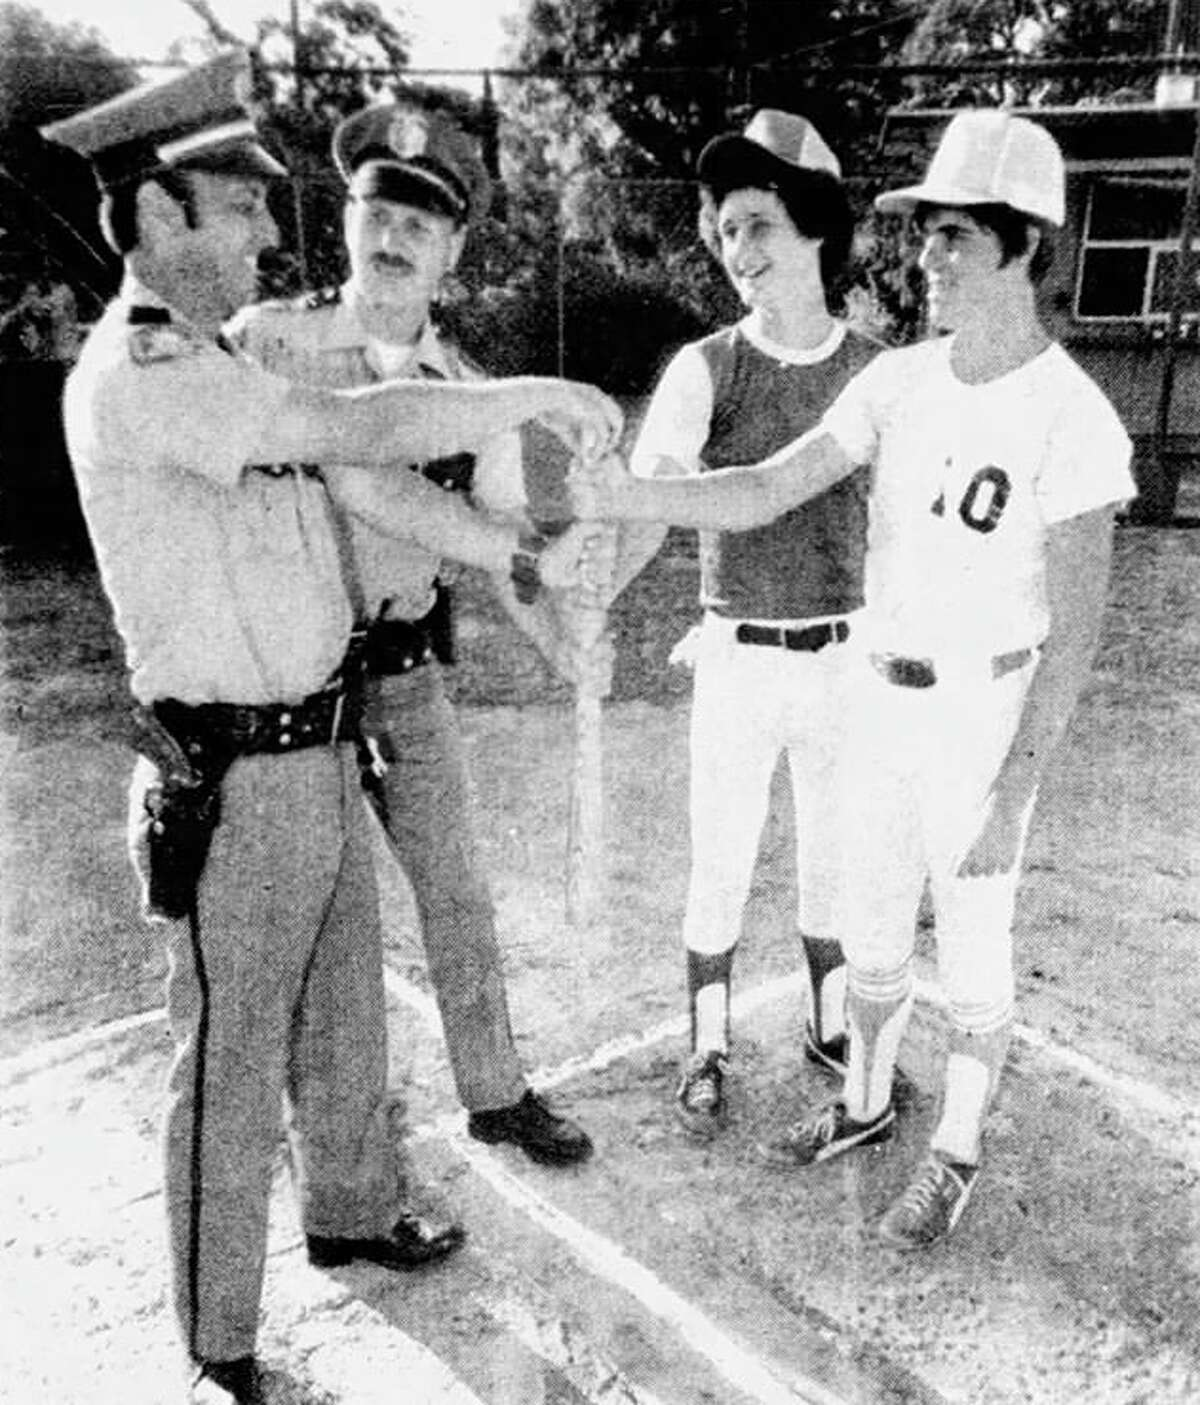 A photo of Joseph James DeAngelo (second from left) from the 1979 Auburn Journal.